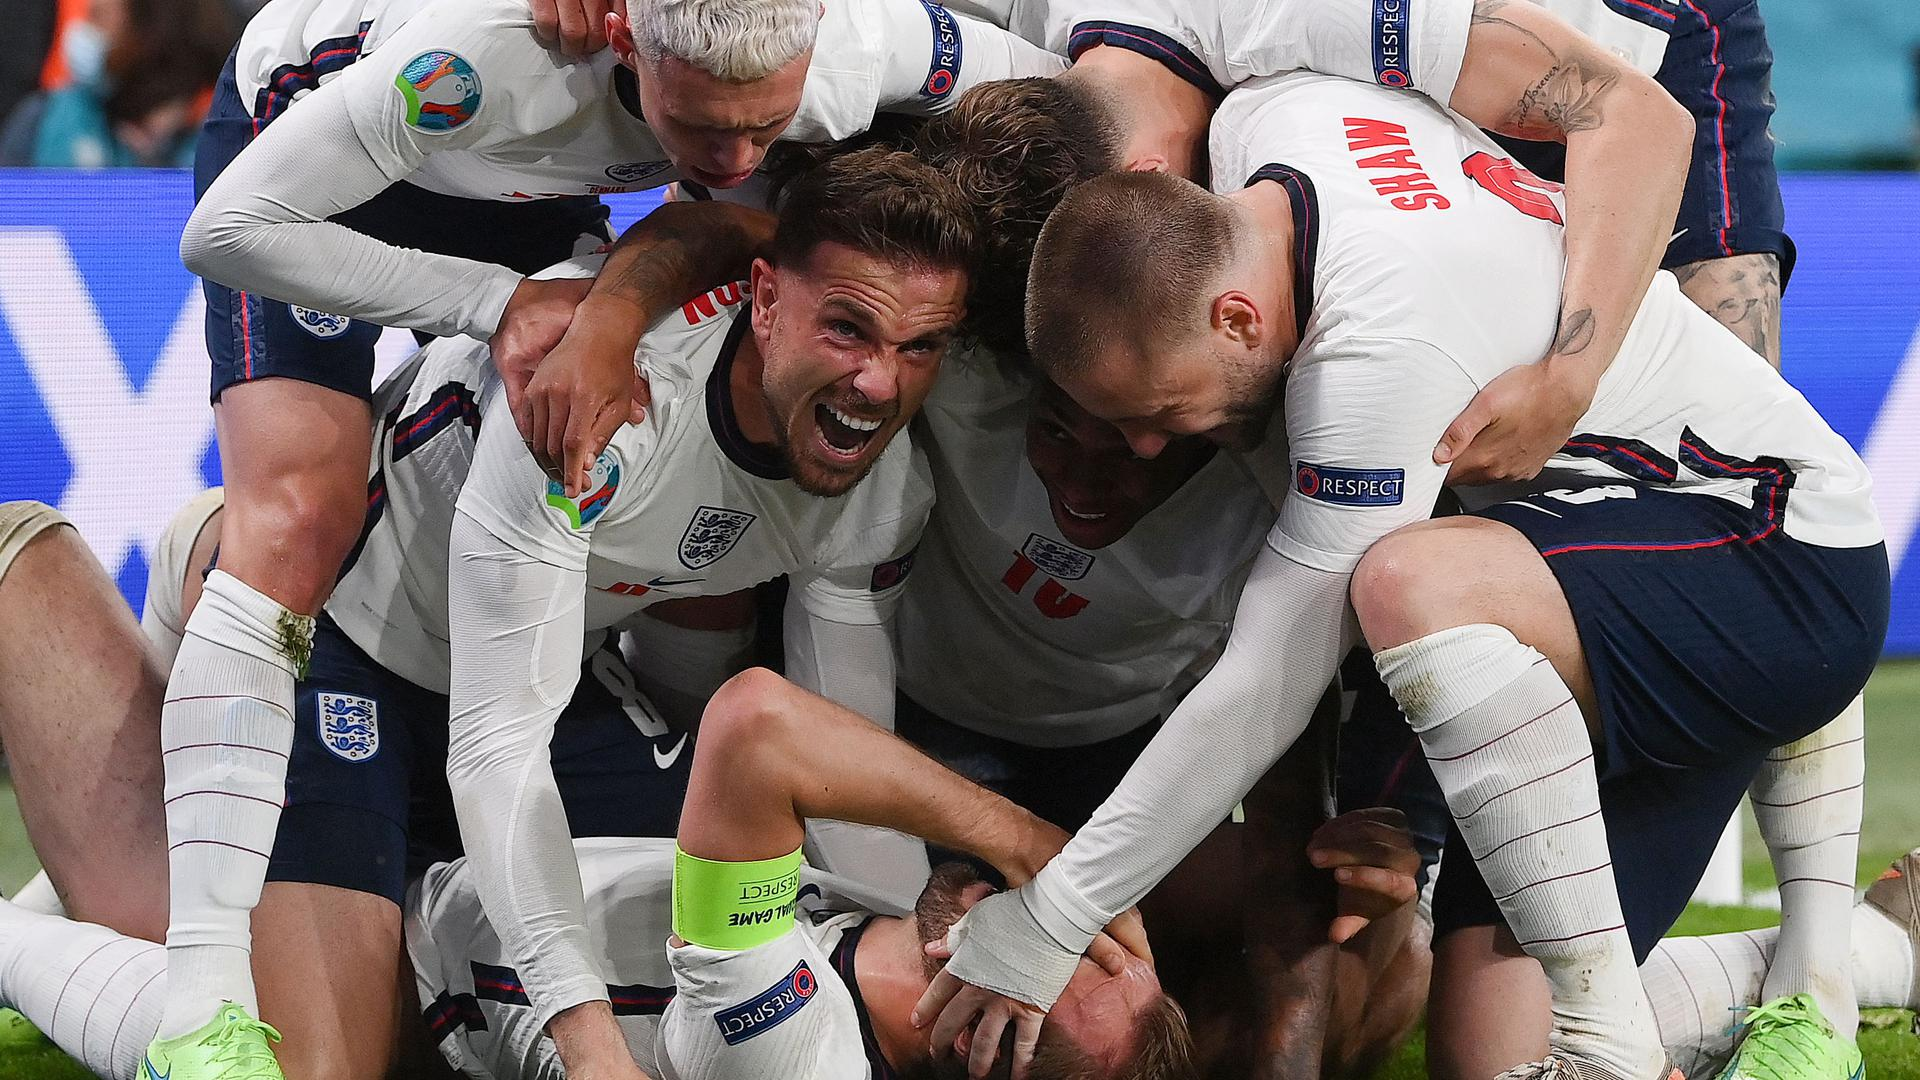 England's forward Harry Kane (bottom) celebrates with teammates after scoring a goal during the UEFA EURO 2020 semi-final football match between England and Denmark at Wembley Stadium in London on July 7, 2021. / AFP / POOL / Laurence Griffiths